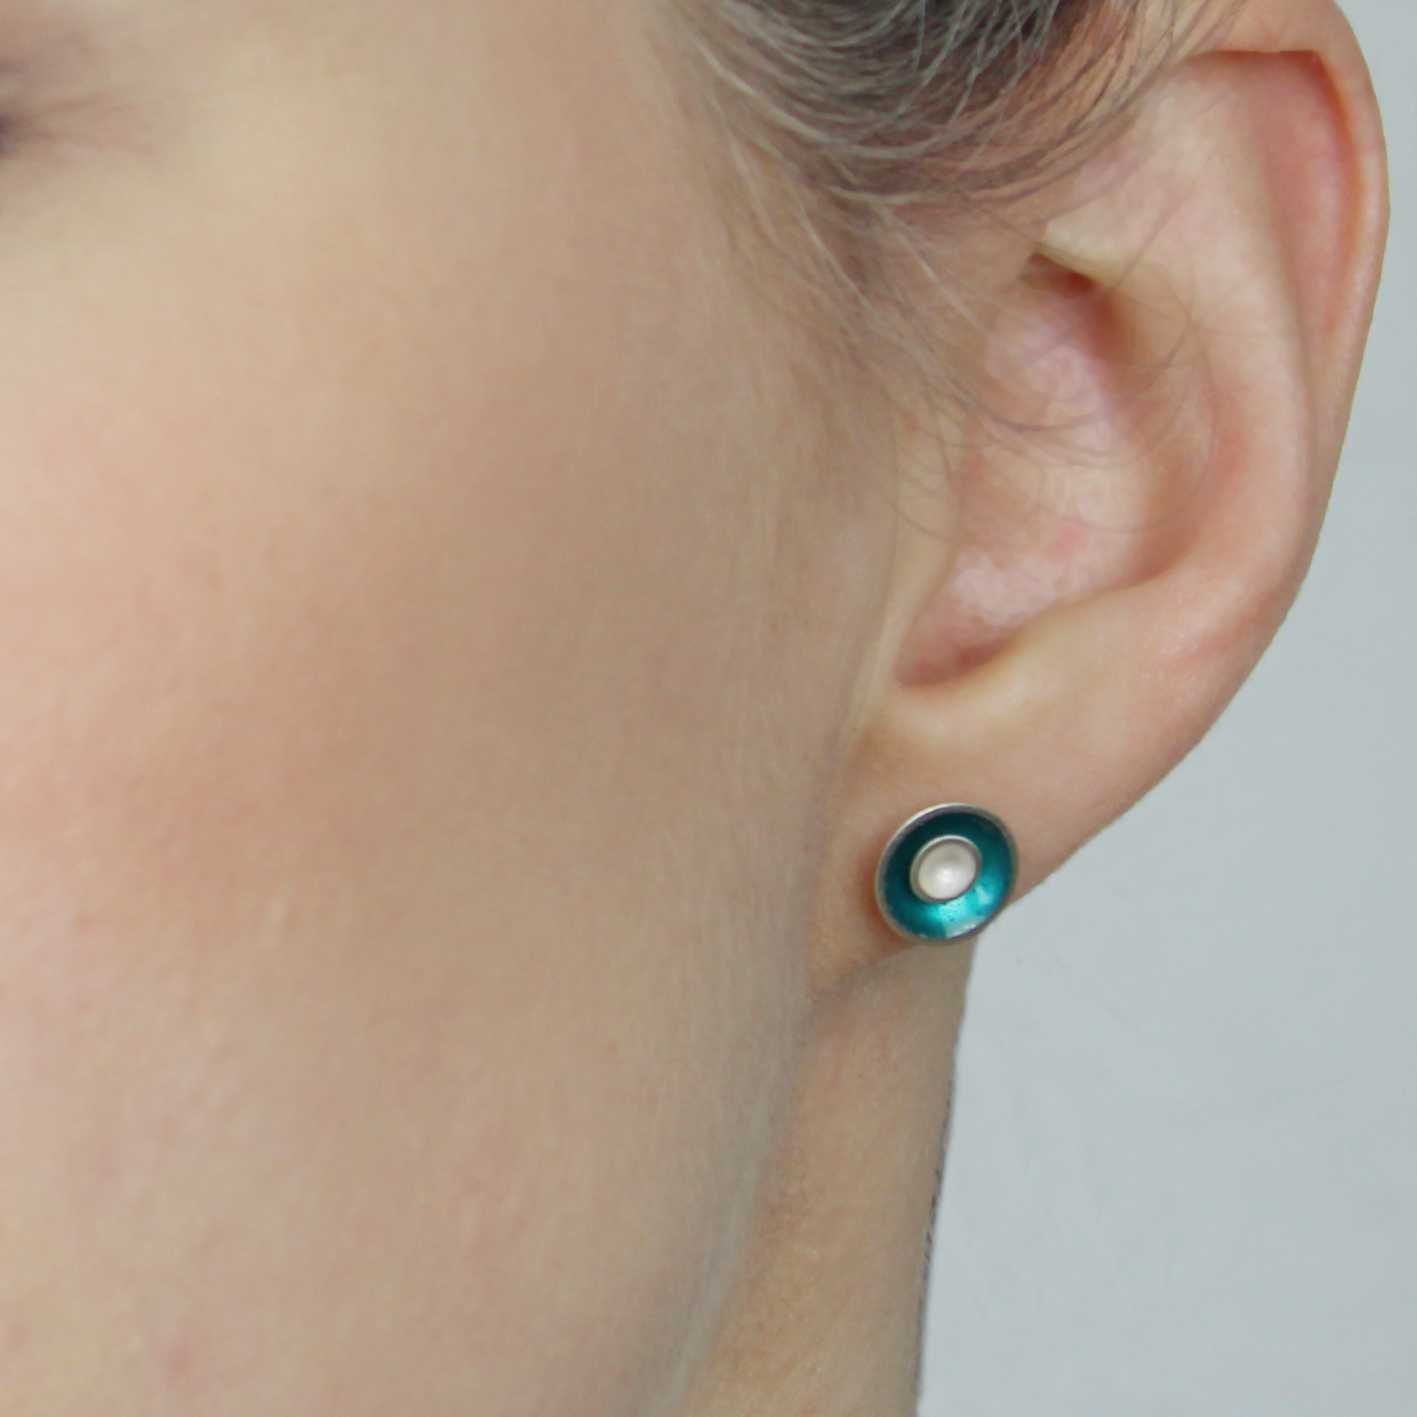 03b1867f5 Small Target Silver Stud Earrings - Teal | Contemporary Earrings by ...